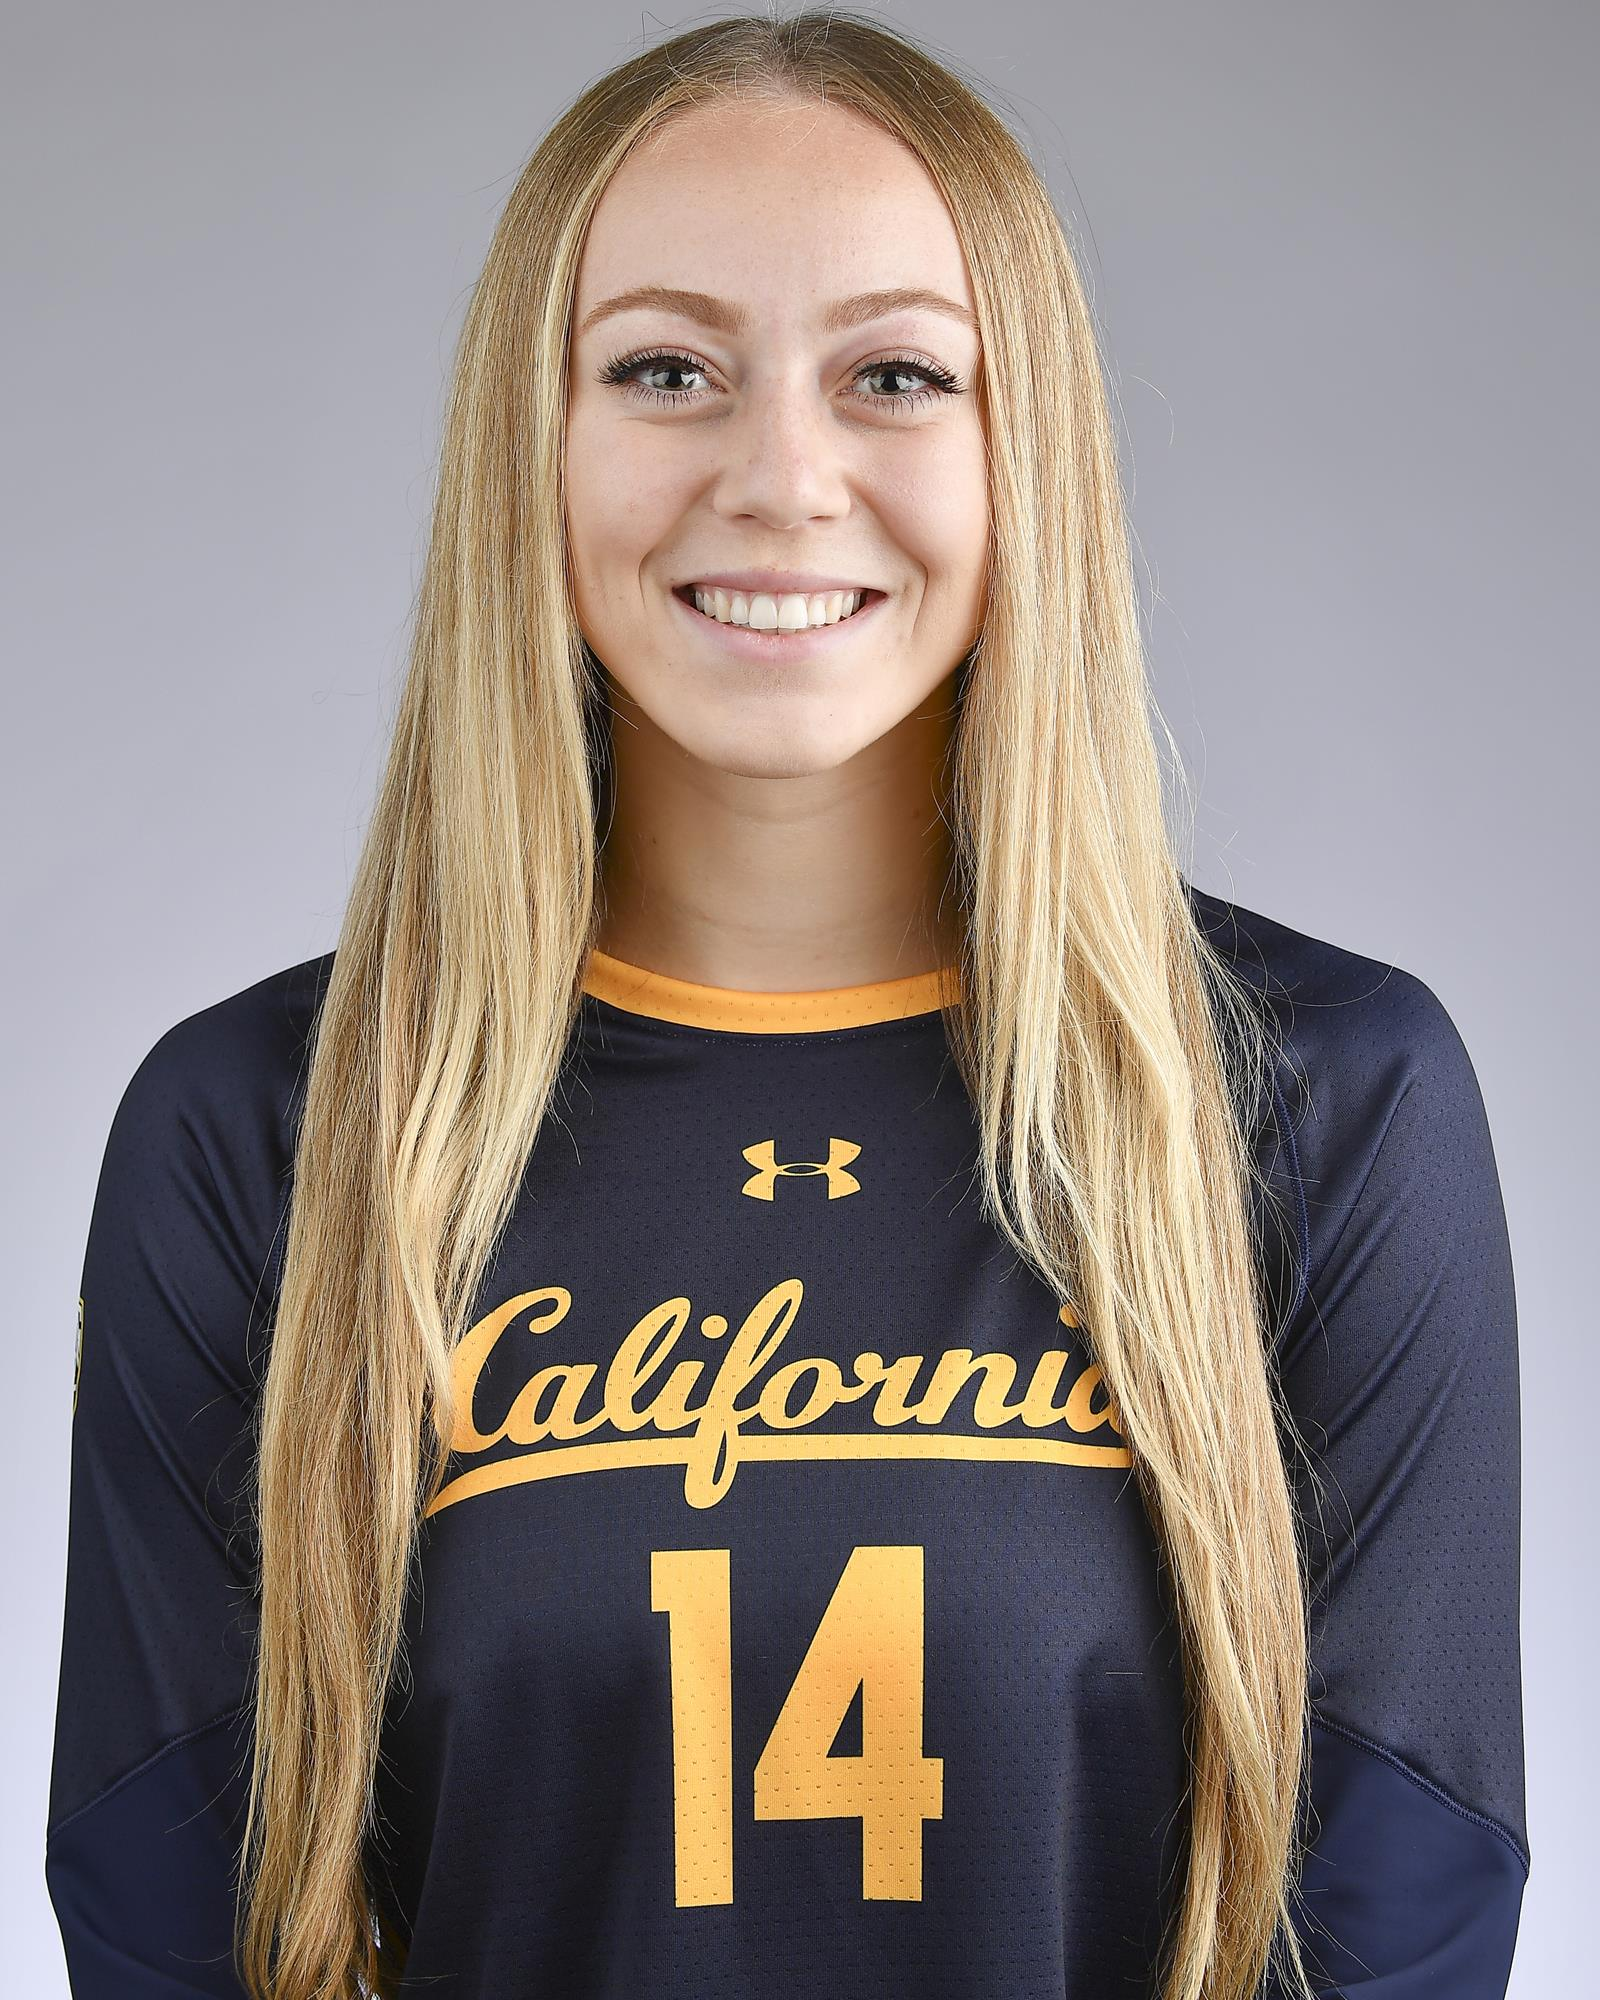 2019 Volleyball Roster University Of California Golden Bears Athletics